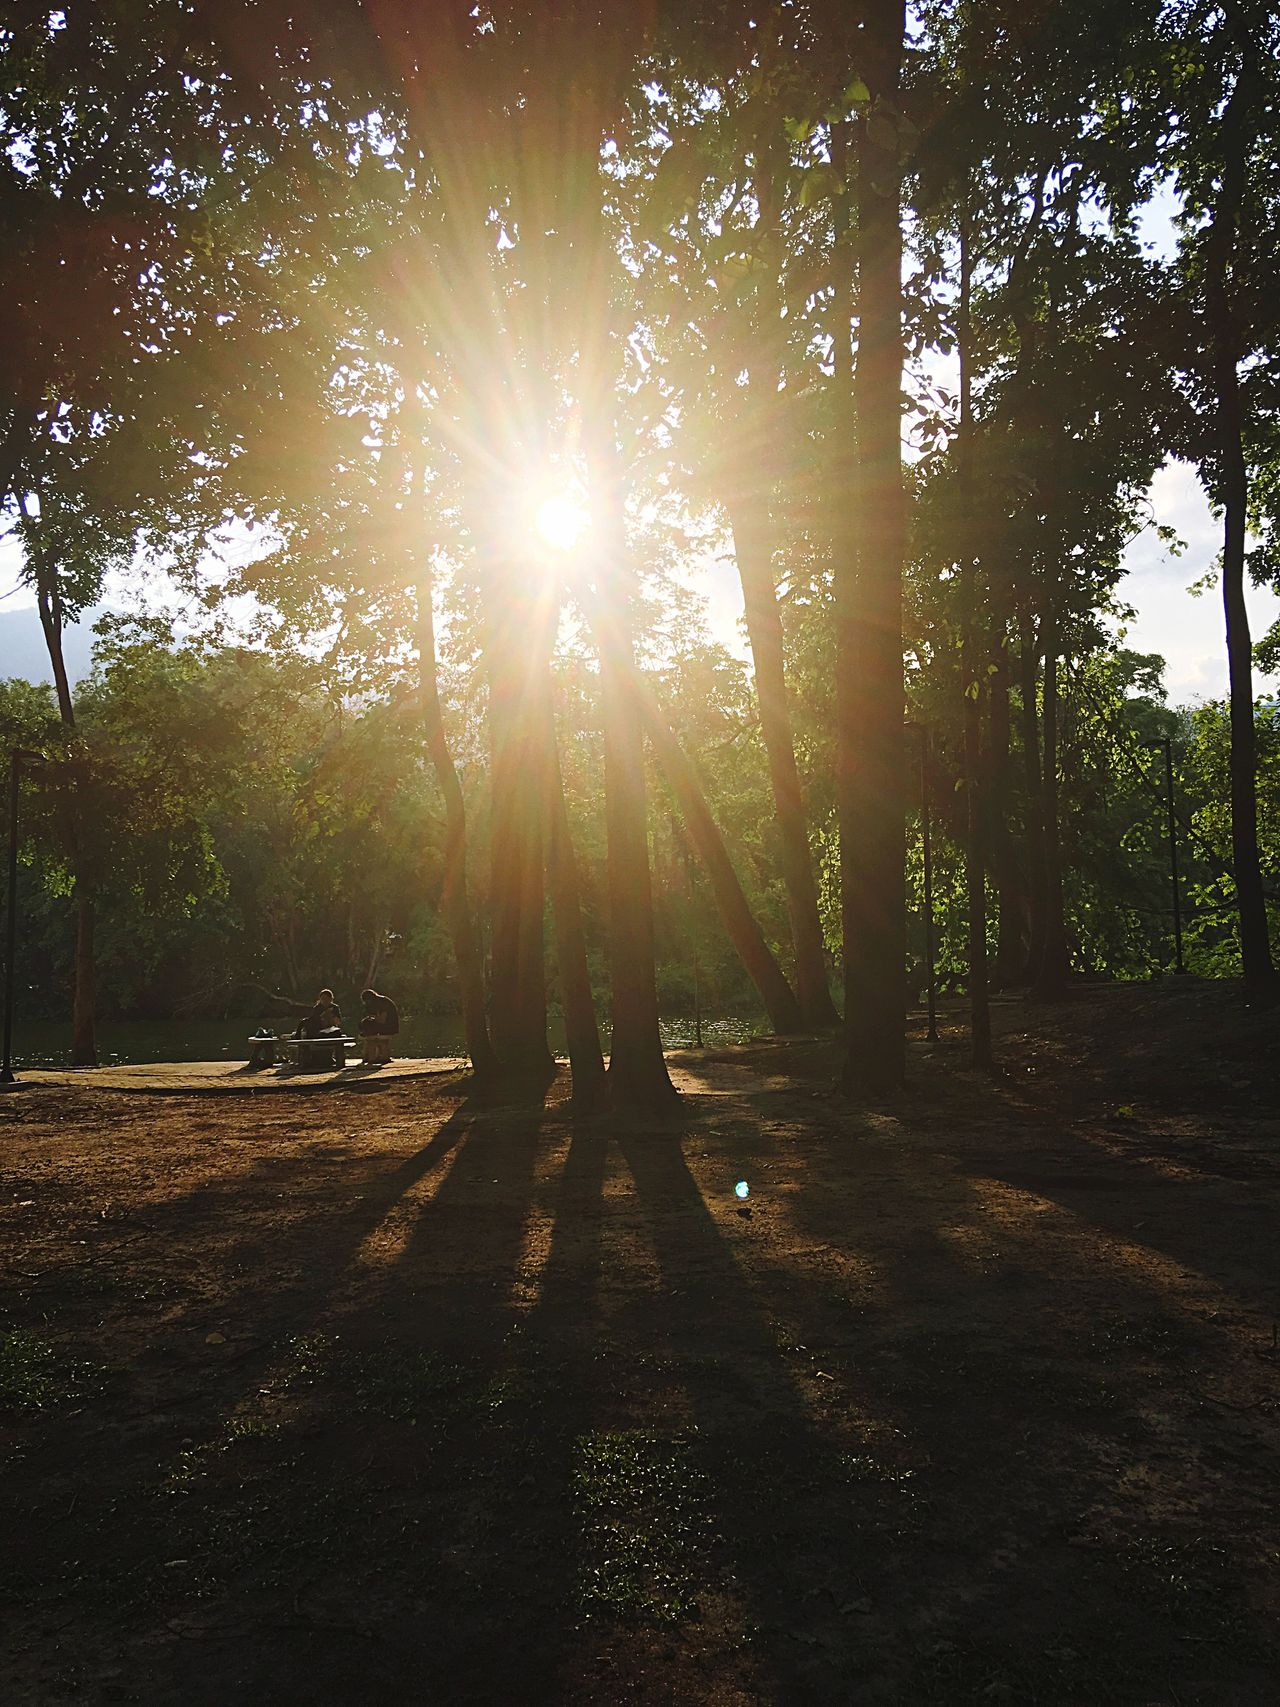 Tree Nature Sunlight Sunbeam Tranquility Forest Beauty In Nature Outdoors Tranquil Scene Scenics Growth Day Sun Shadow No People Sunset Sky